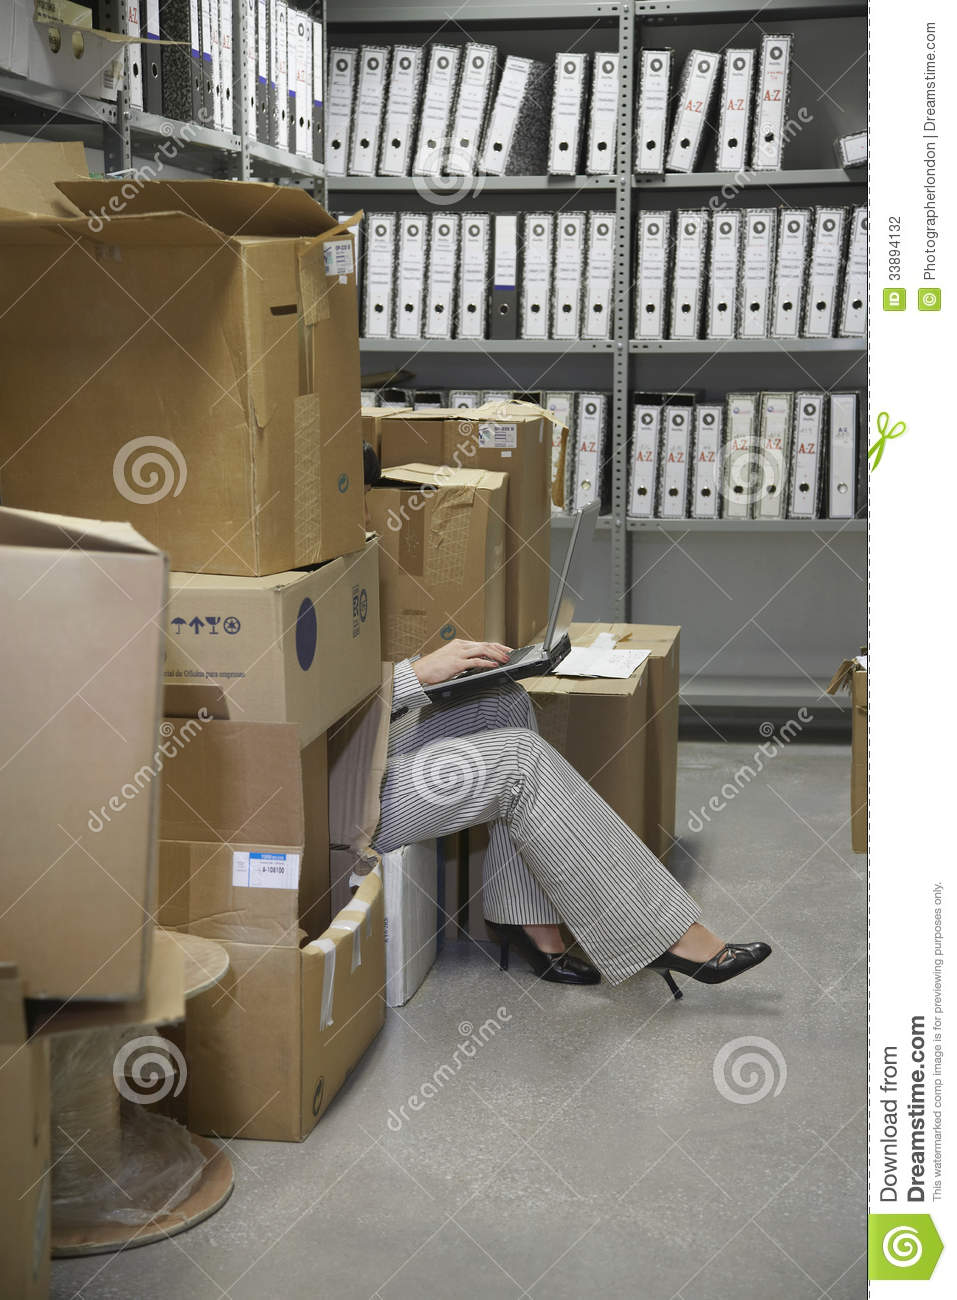 office storage room. Woman Using Laptop In Office Storage Room E